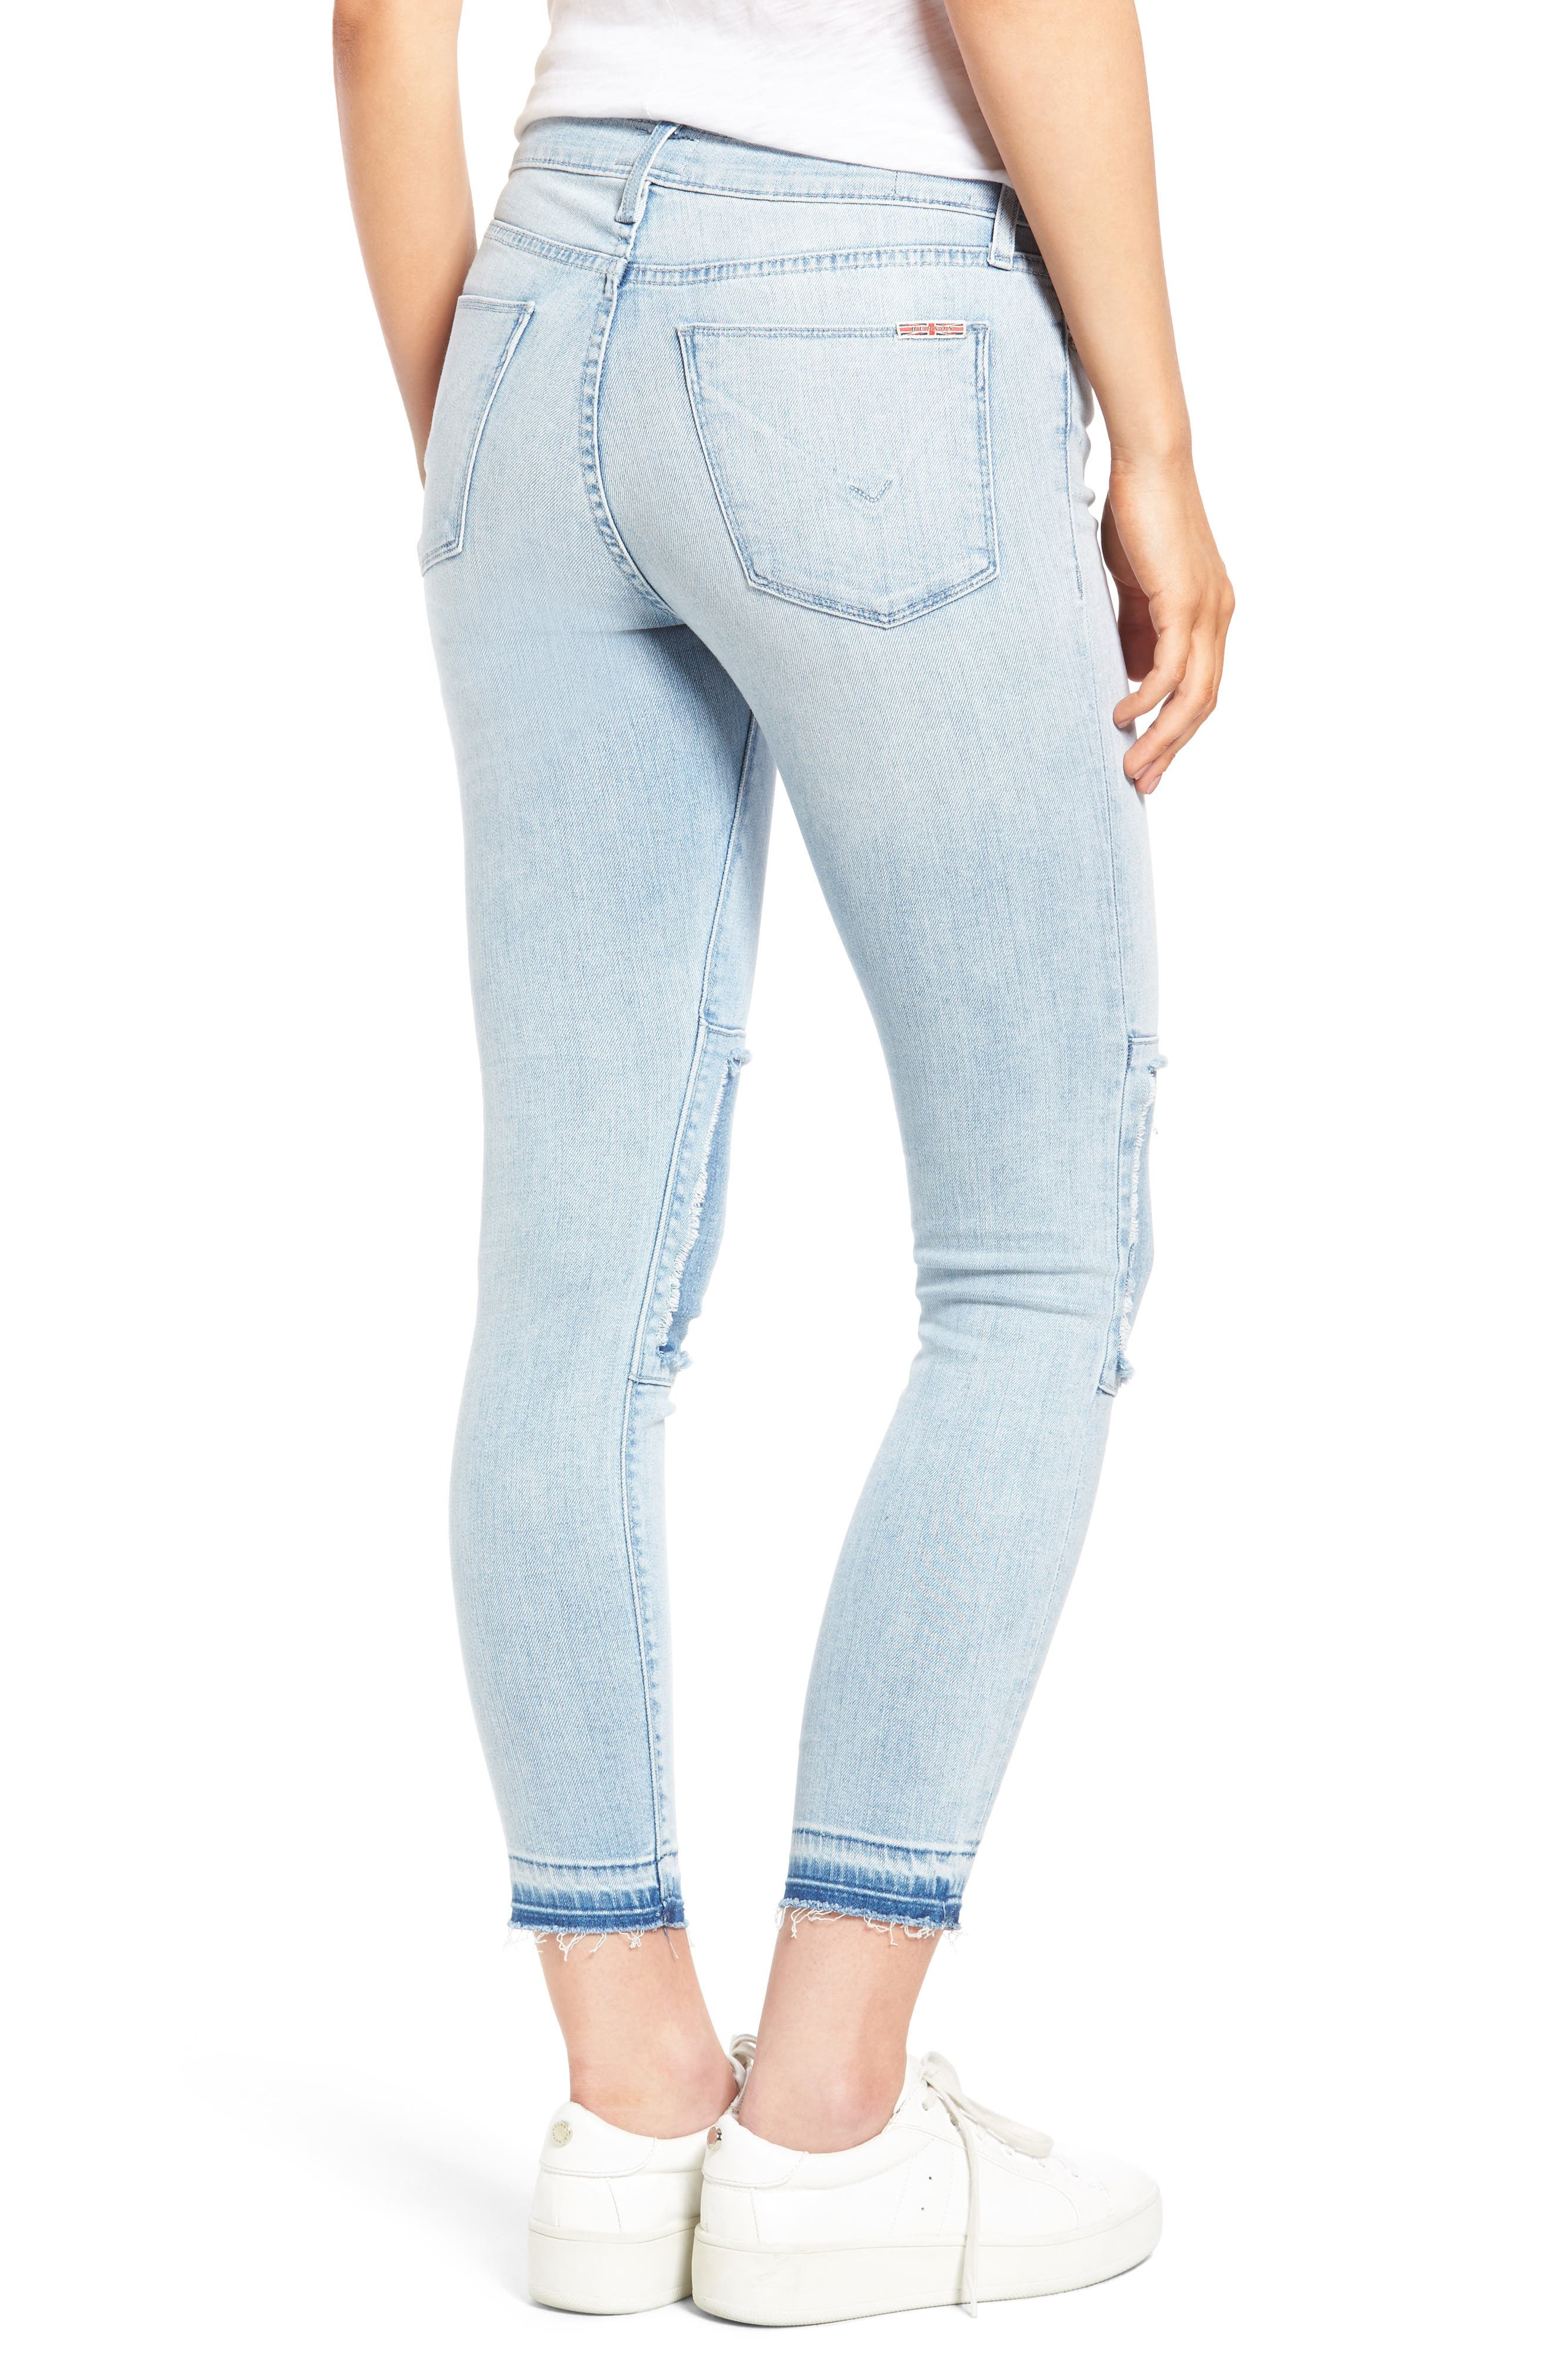 Szzi Mid Rise Patched Skinny Jeans,                             Alternate thumbnail 2, color,                             455